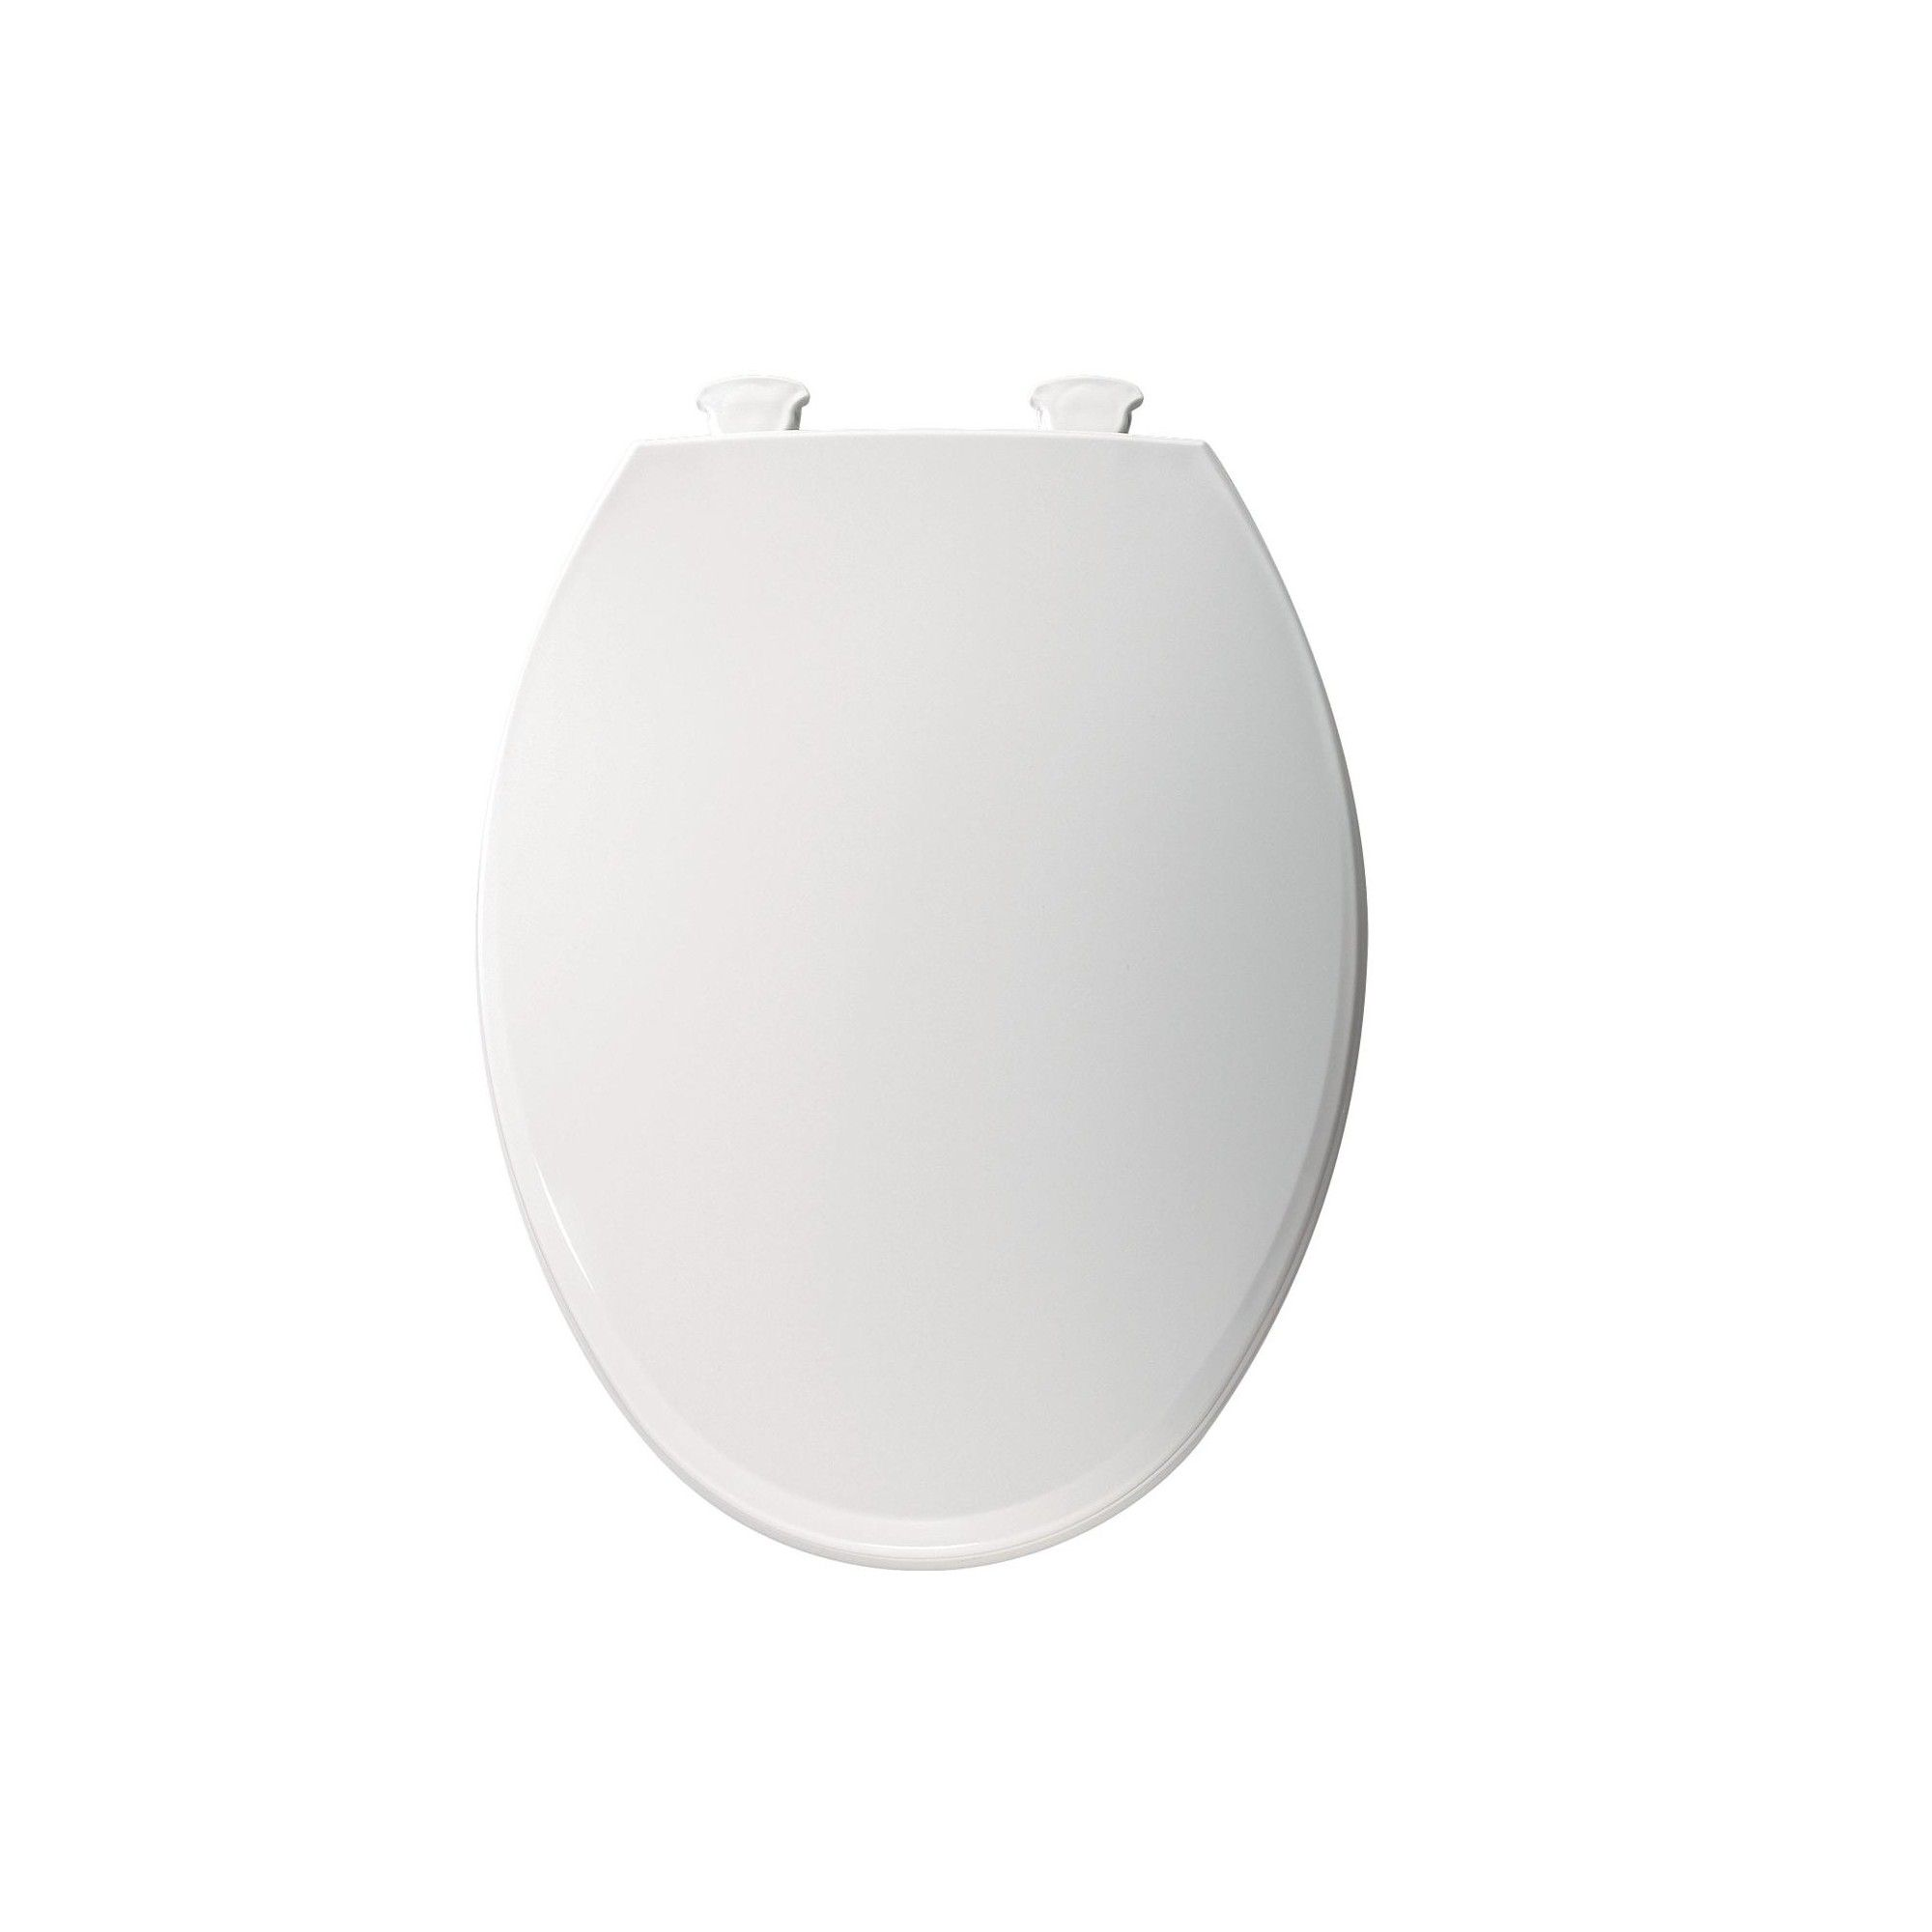 Bemis 1800ec Elongated Plastic Toilet Seat With Easy Clean